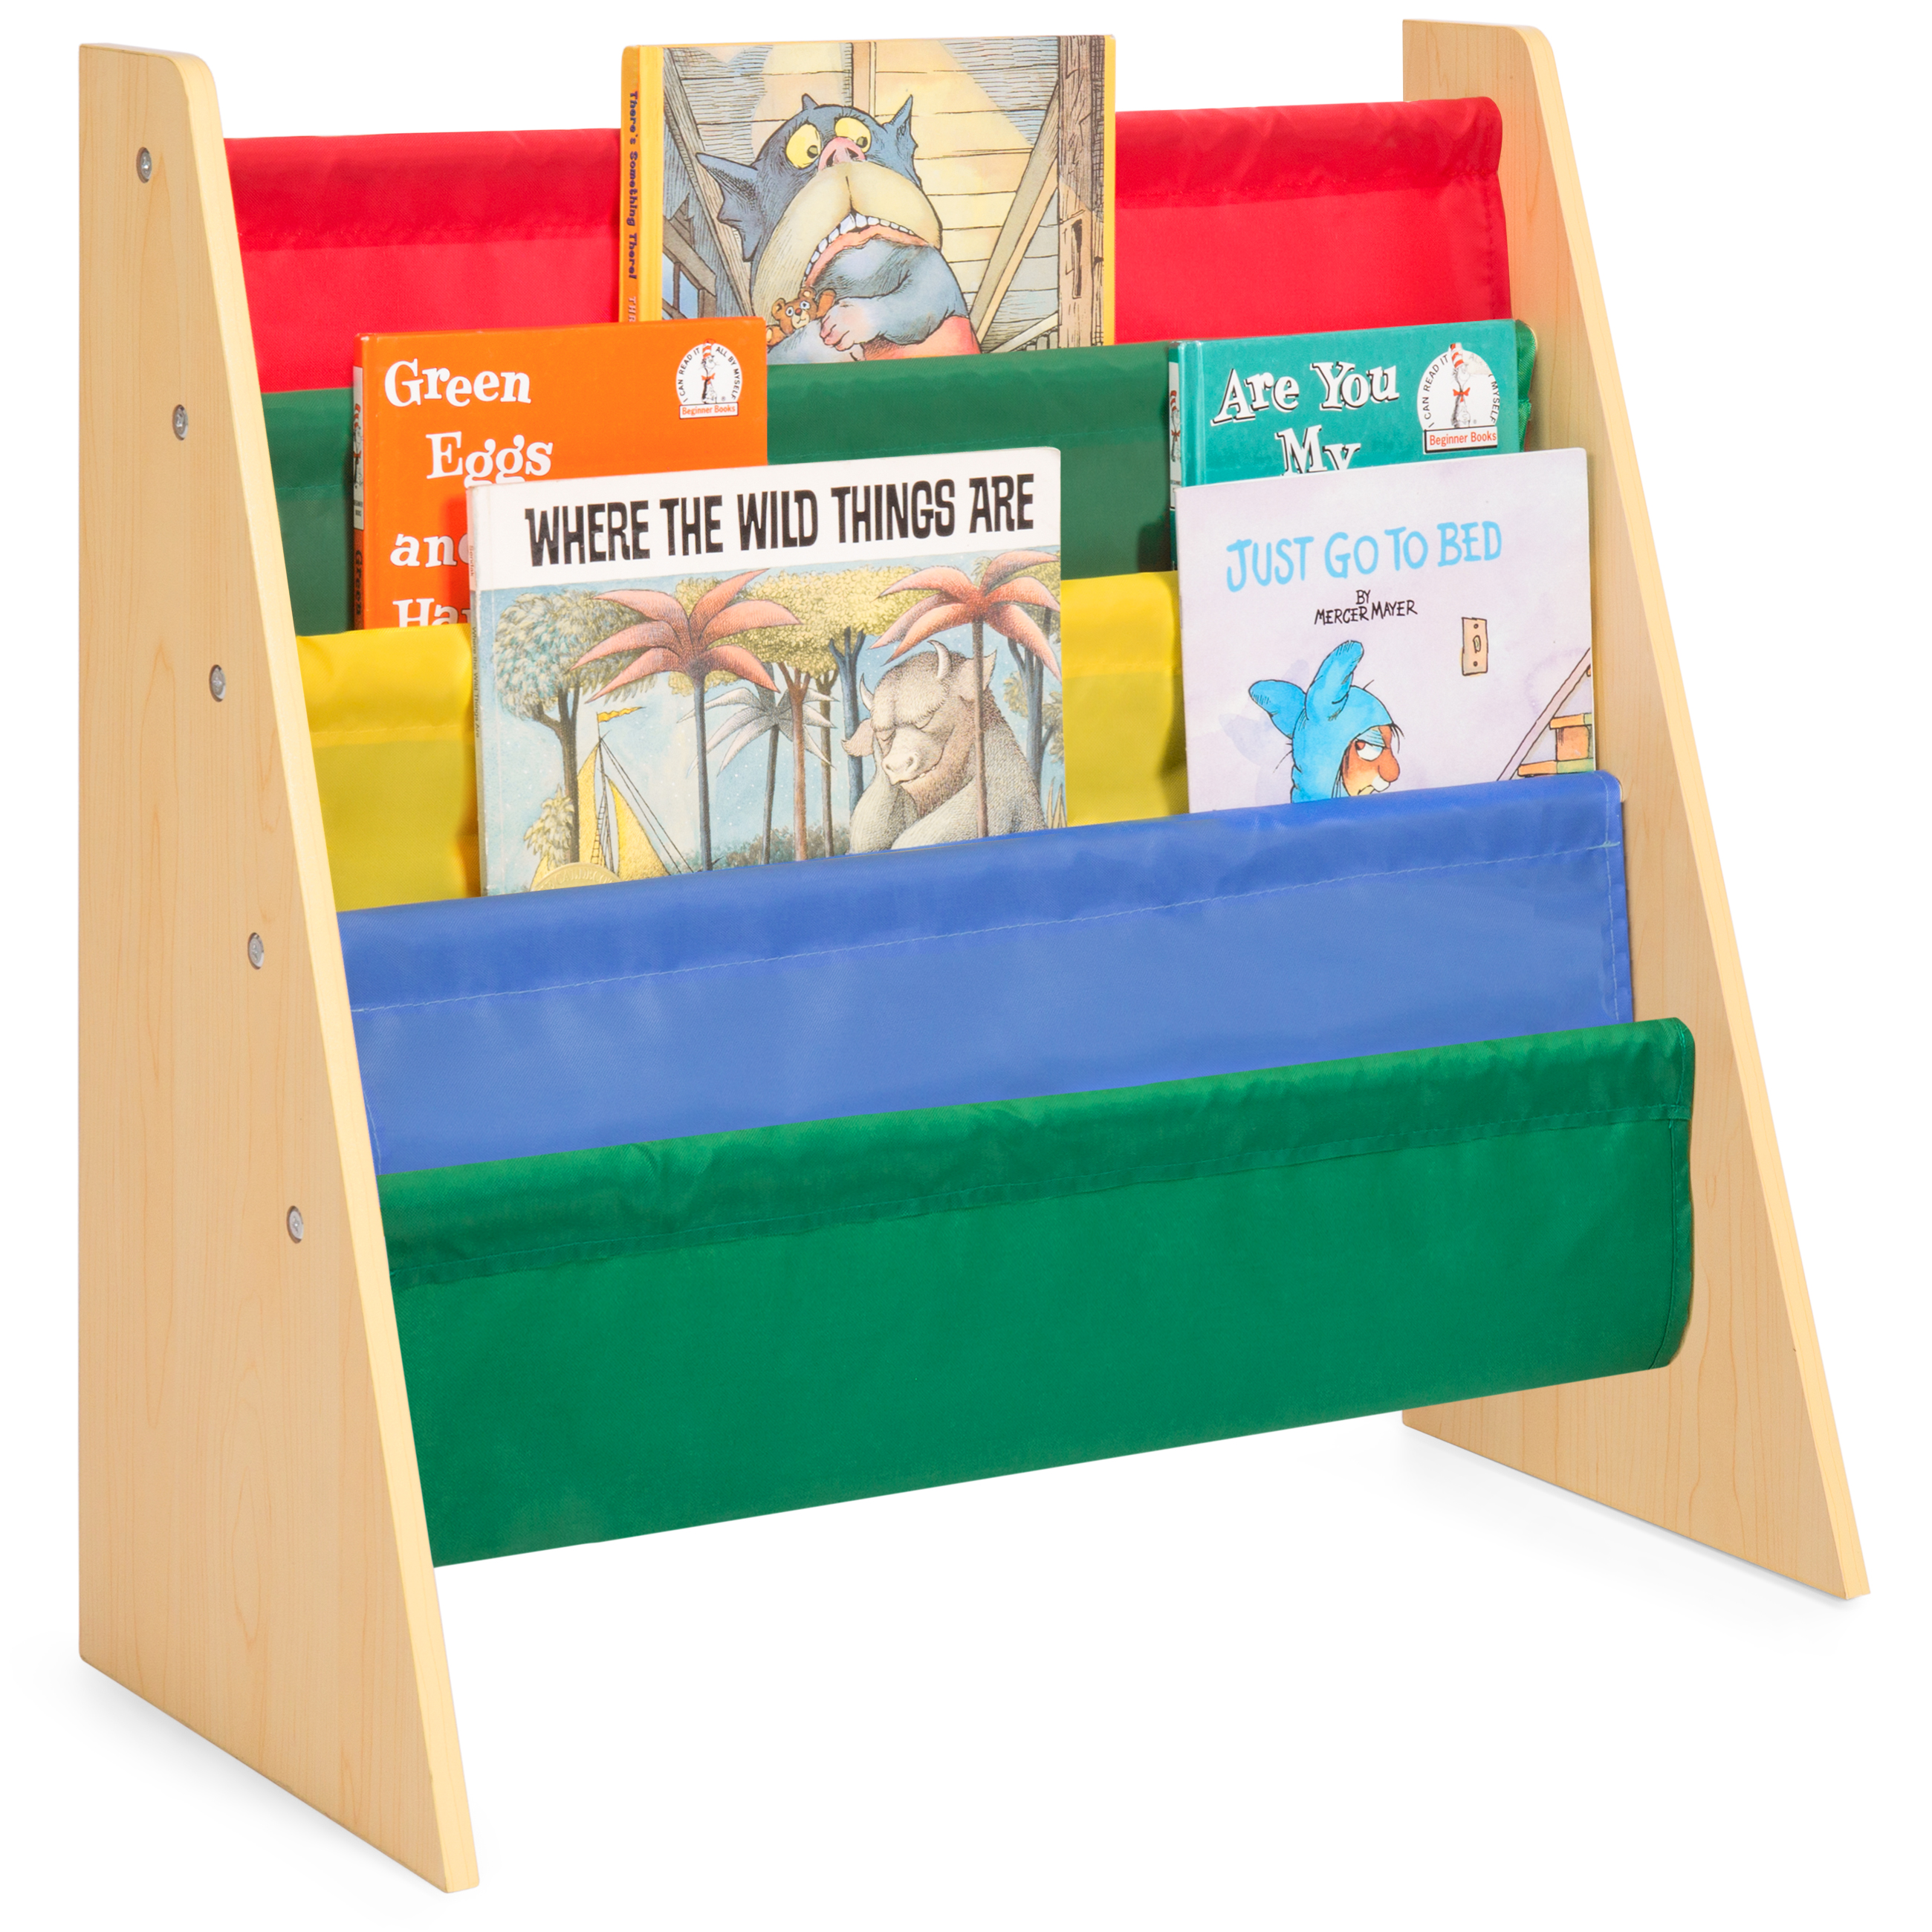 Best Choice Products Kids Bookshelf Toy Storage Rack w/ Fabric Sleeves - Multicolor